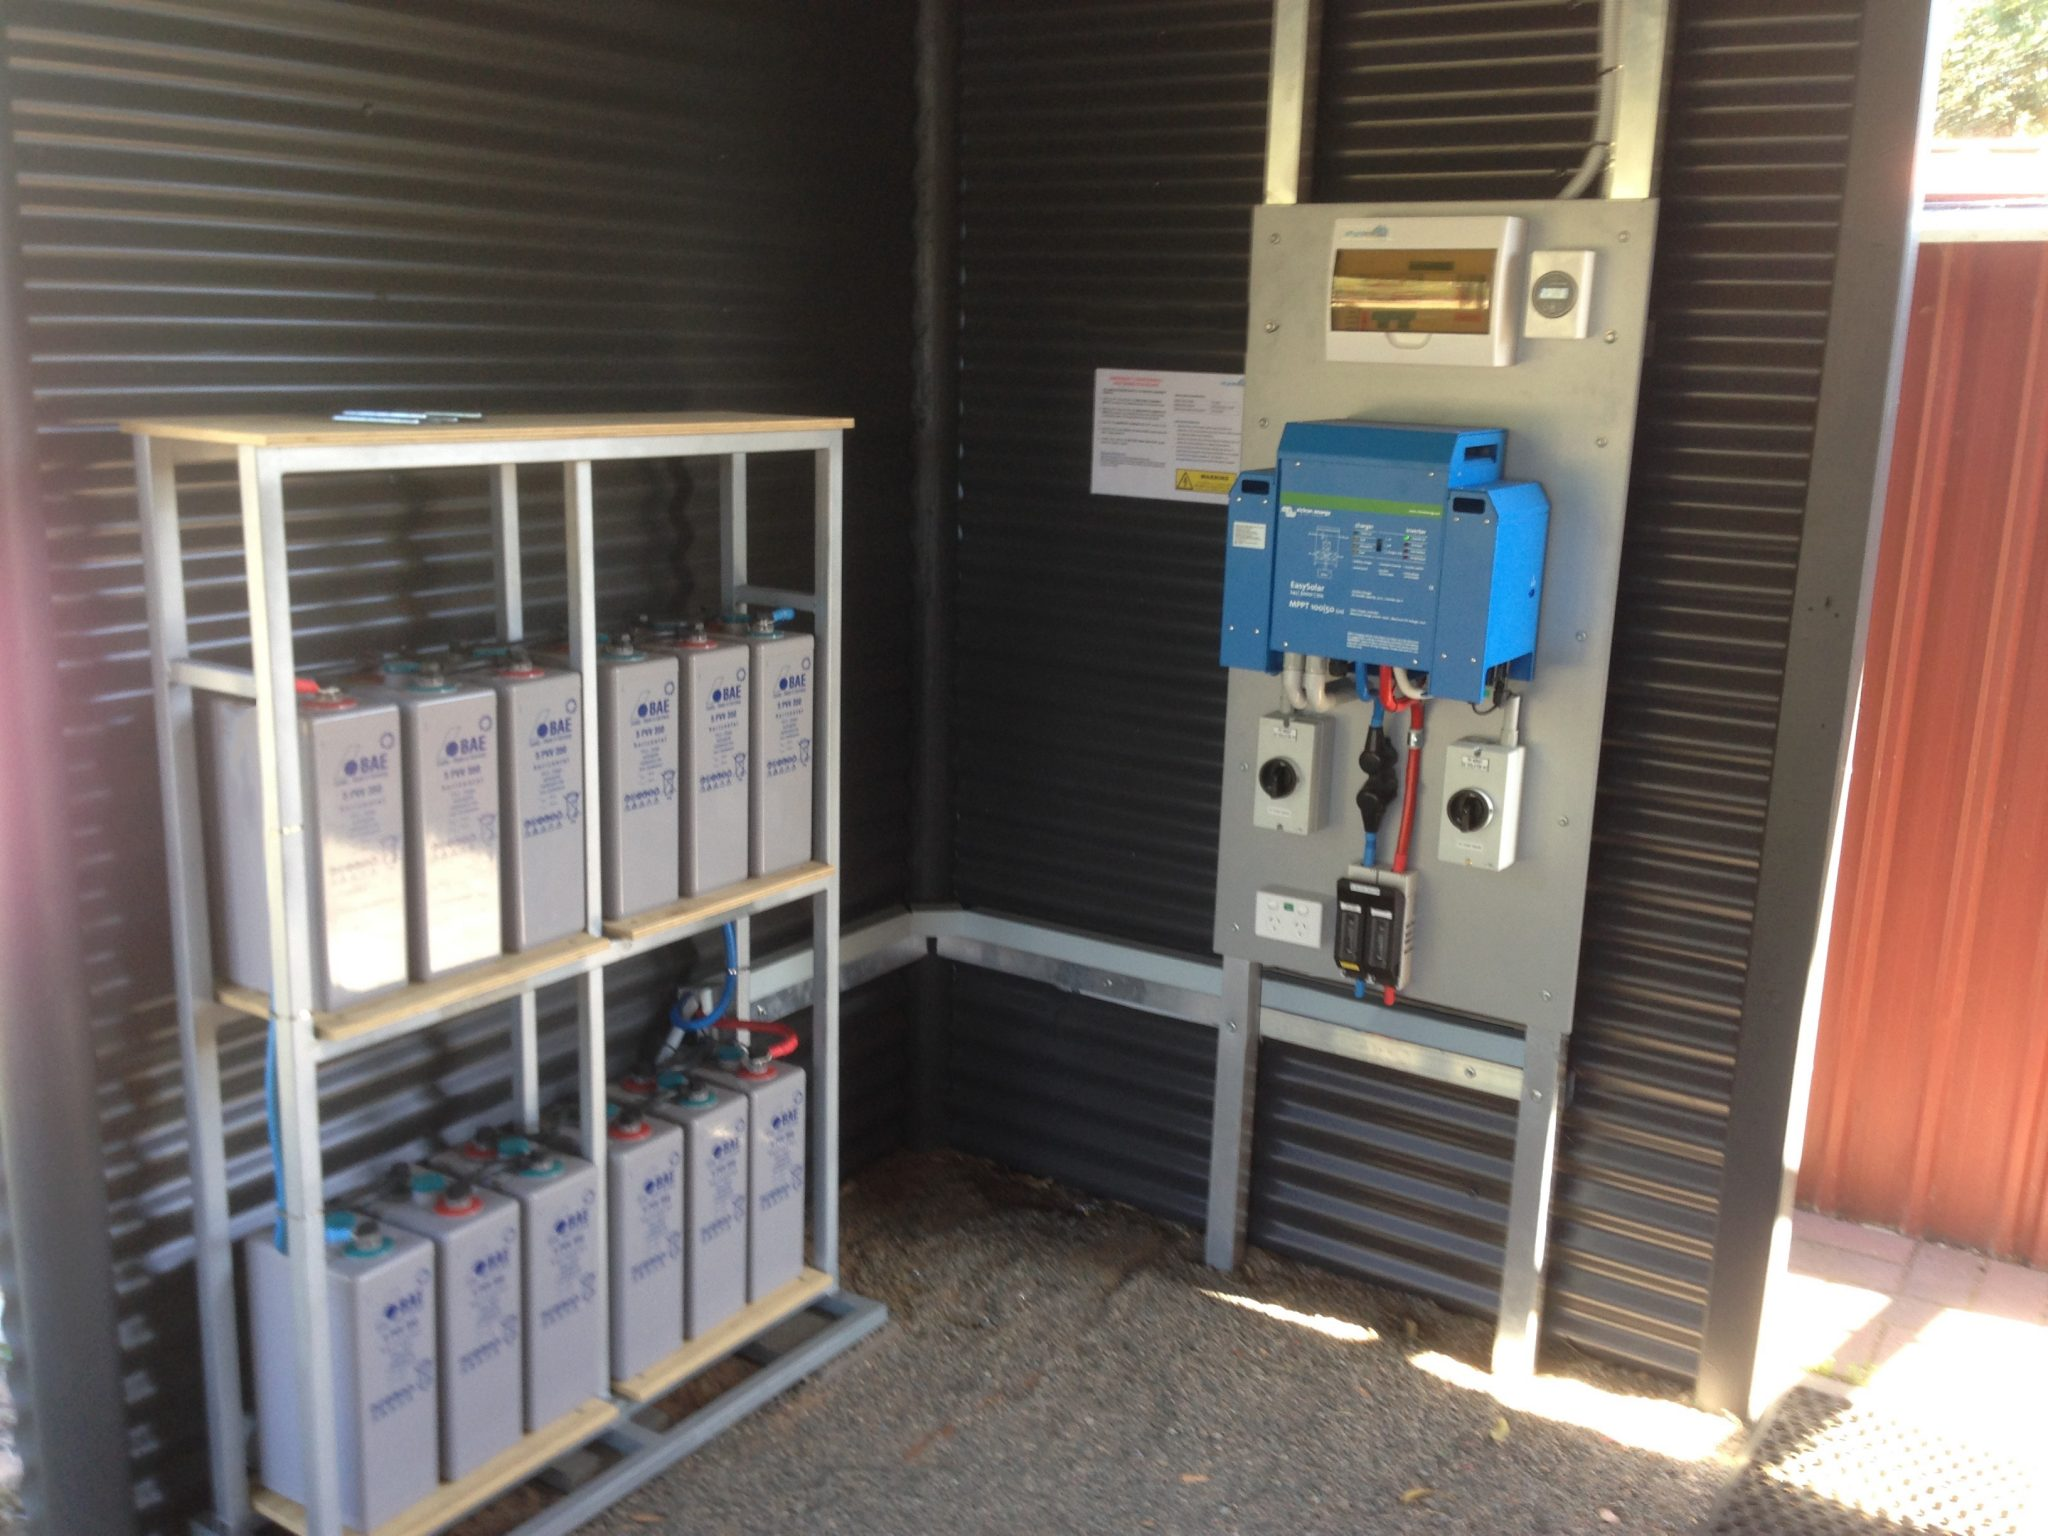 Off Grid Shed Power Energy Australia Wiring A For Electricity The System Requires Very Small Amount Of Space And Fits Neatly In Your Utility